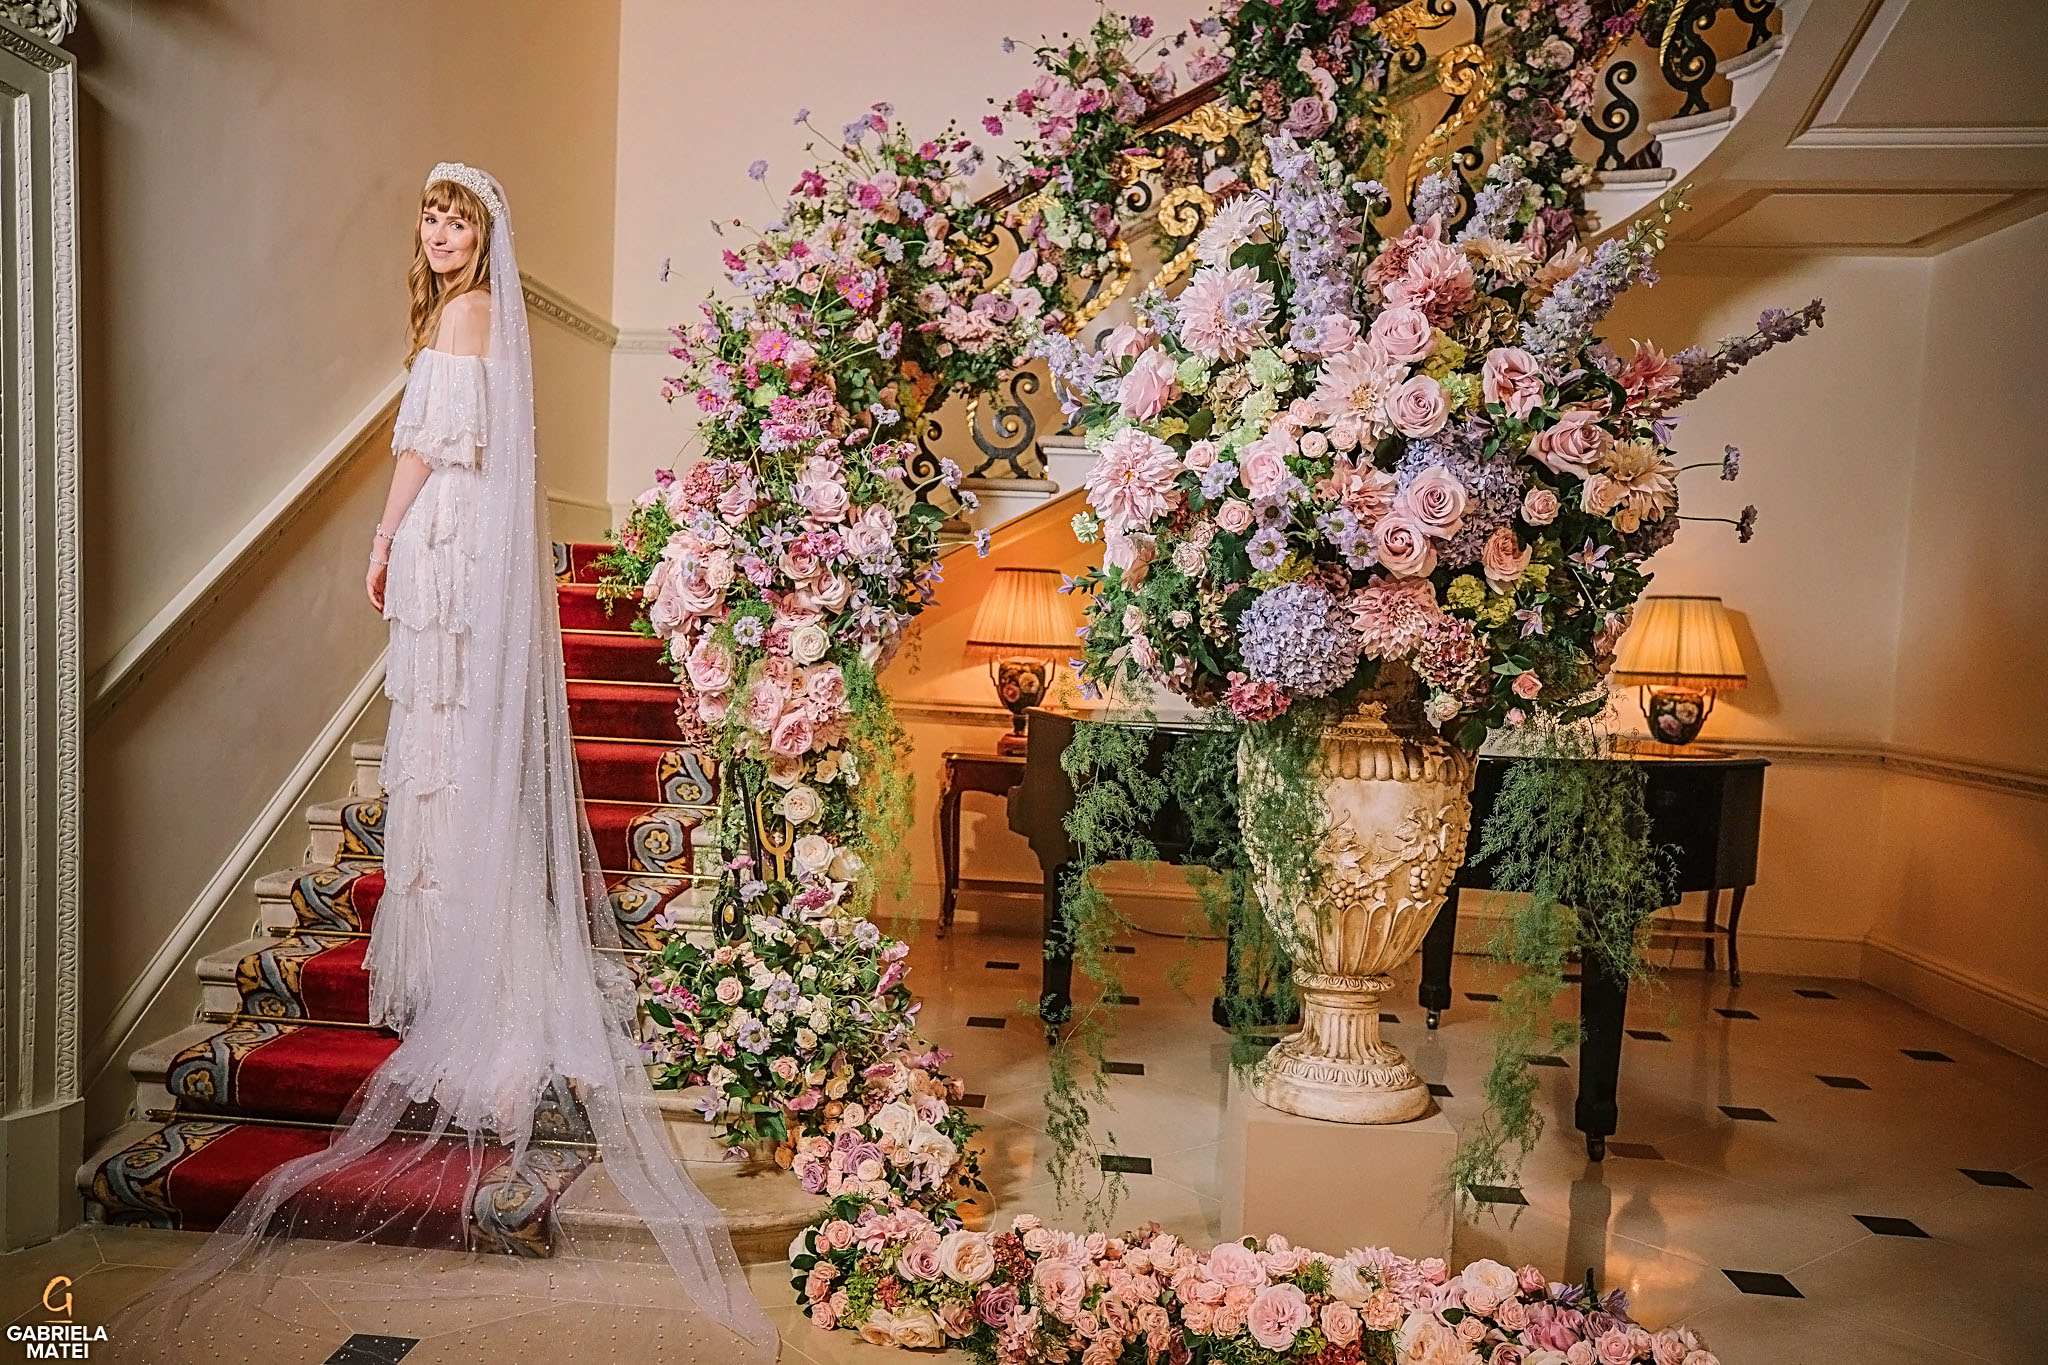 Beautiful bride on a staircase , wearing an elegant dress and a long veil in breathtaking wedding flower decor